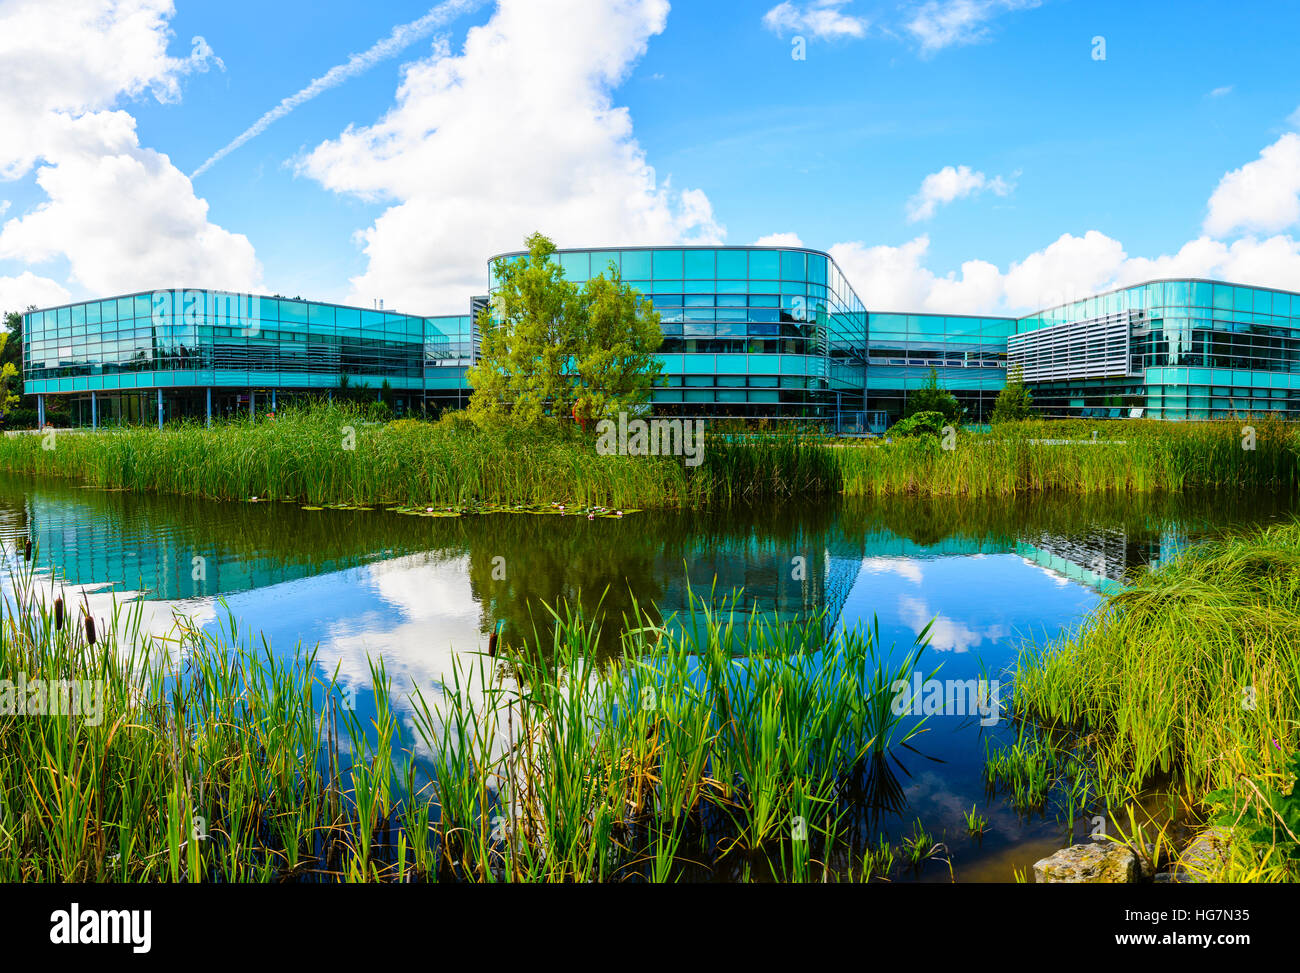 Faculty of Health & Social Care building at Edge Hill University near Ormskirk Lancashire - Stock Image